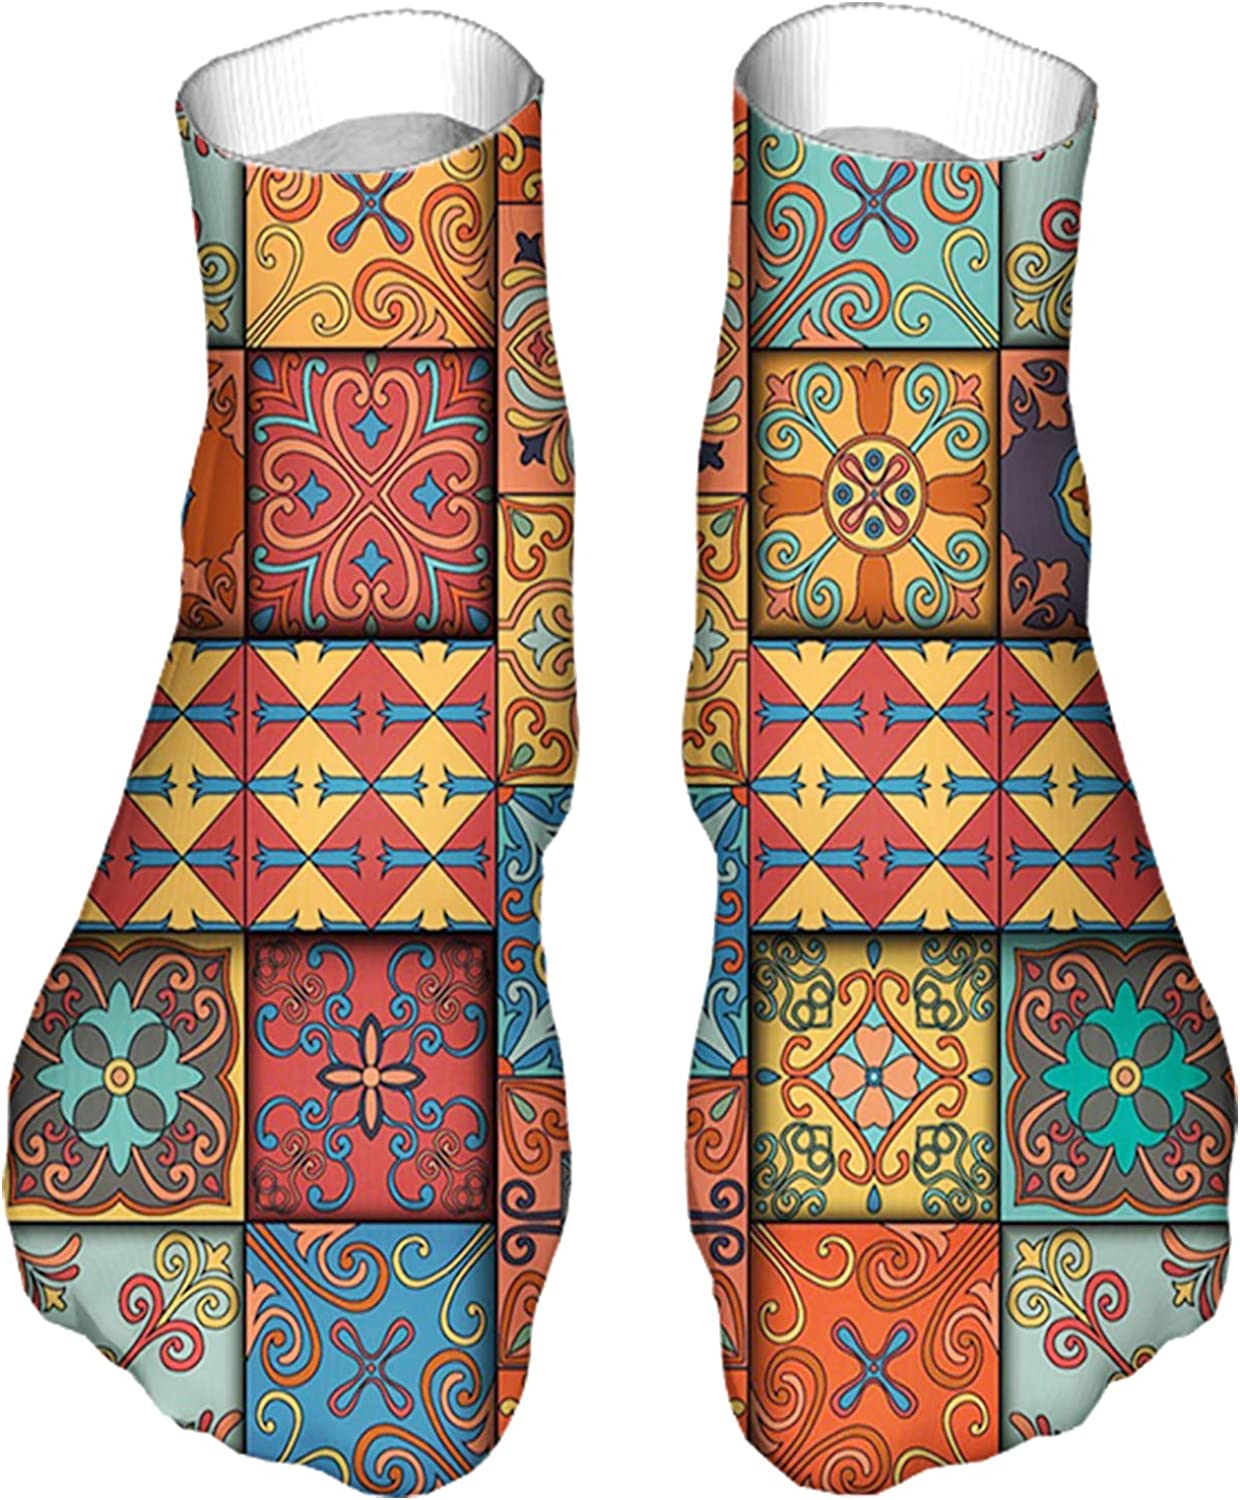 Women's Colorful Patterned Unisex Low Cut/No Show Socks,Colorful Dimensional Look Tile Squares Illustration in Ethn